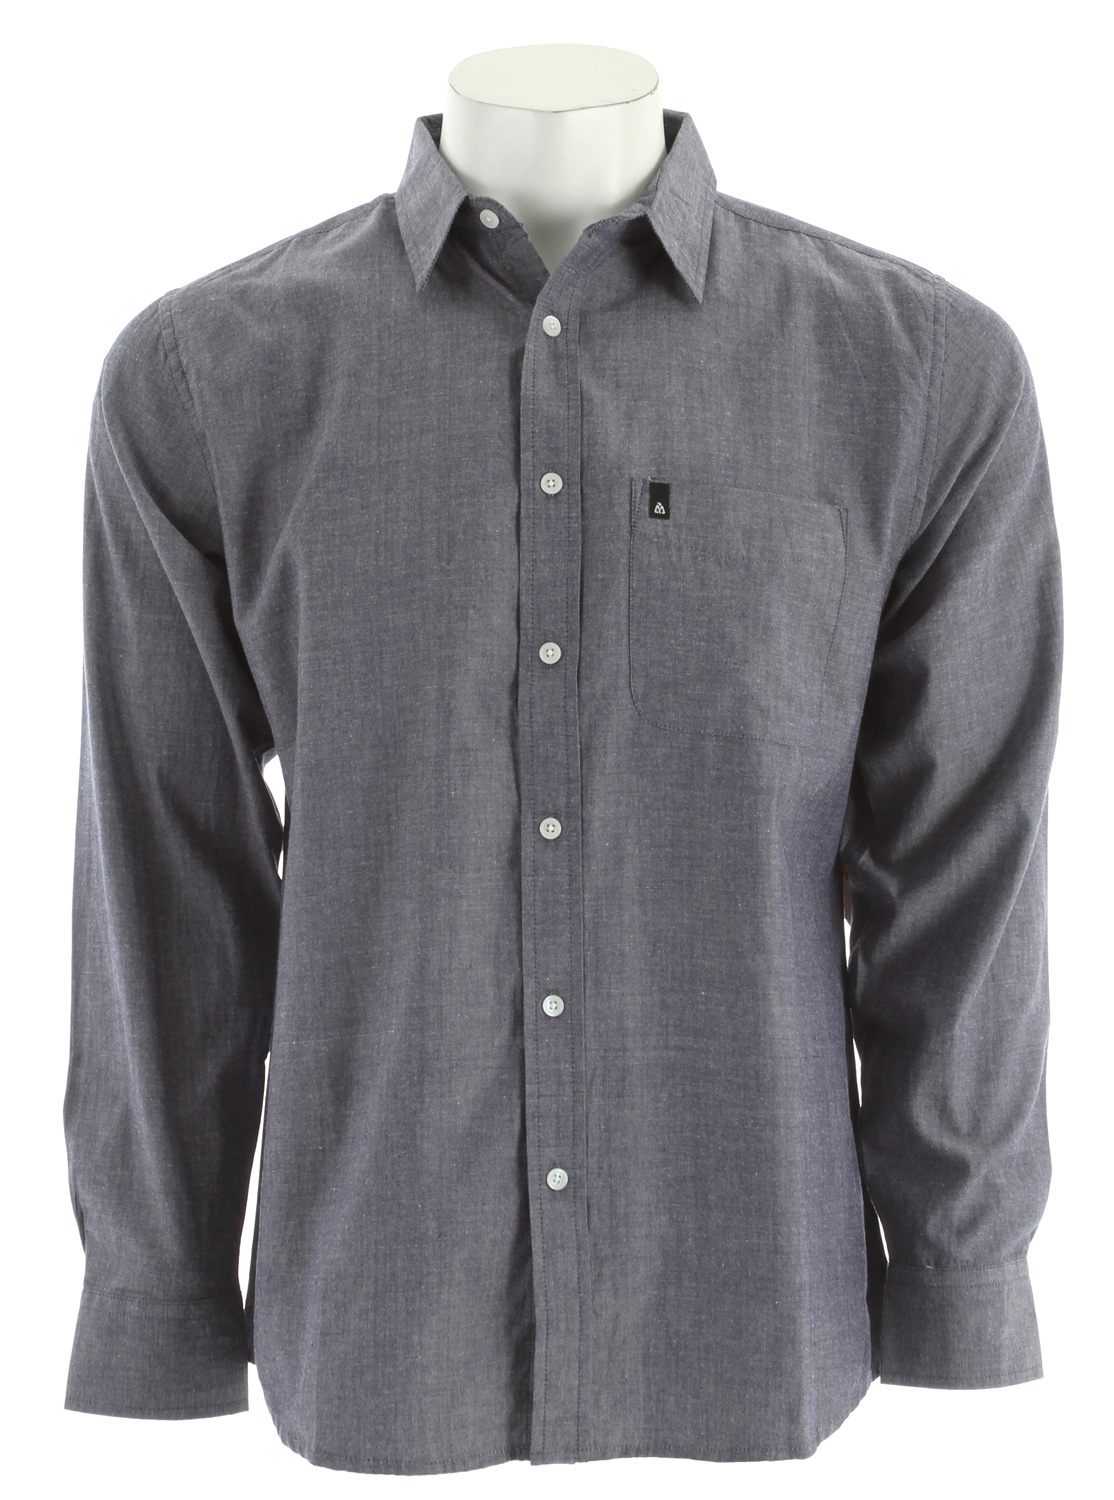 Entertainment Key Features of the Matix Professor X Shirt: 100% cotton Marc Johnson signature shirt with chest pocket Great solid style with Marc Johnson signature label Matix labeling Slim fit - $49.95